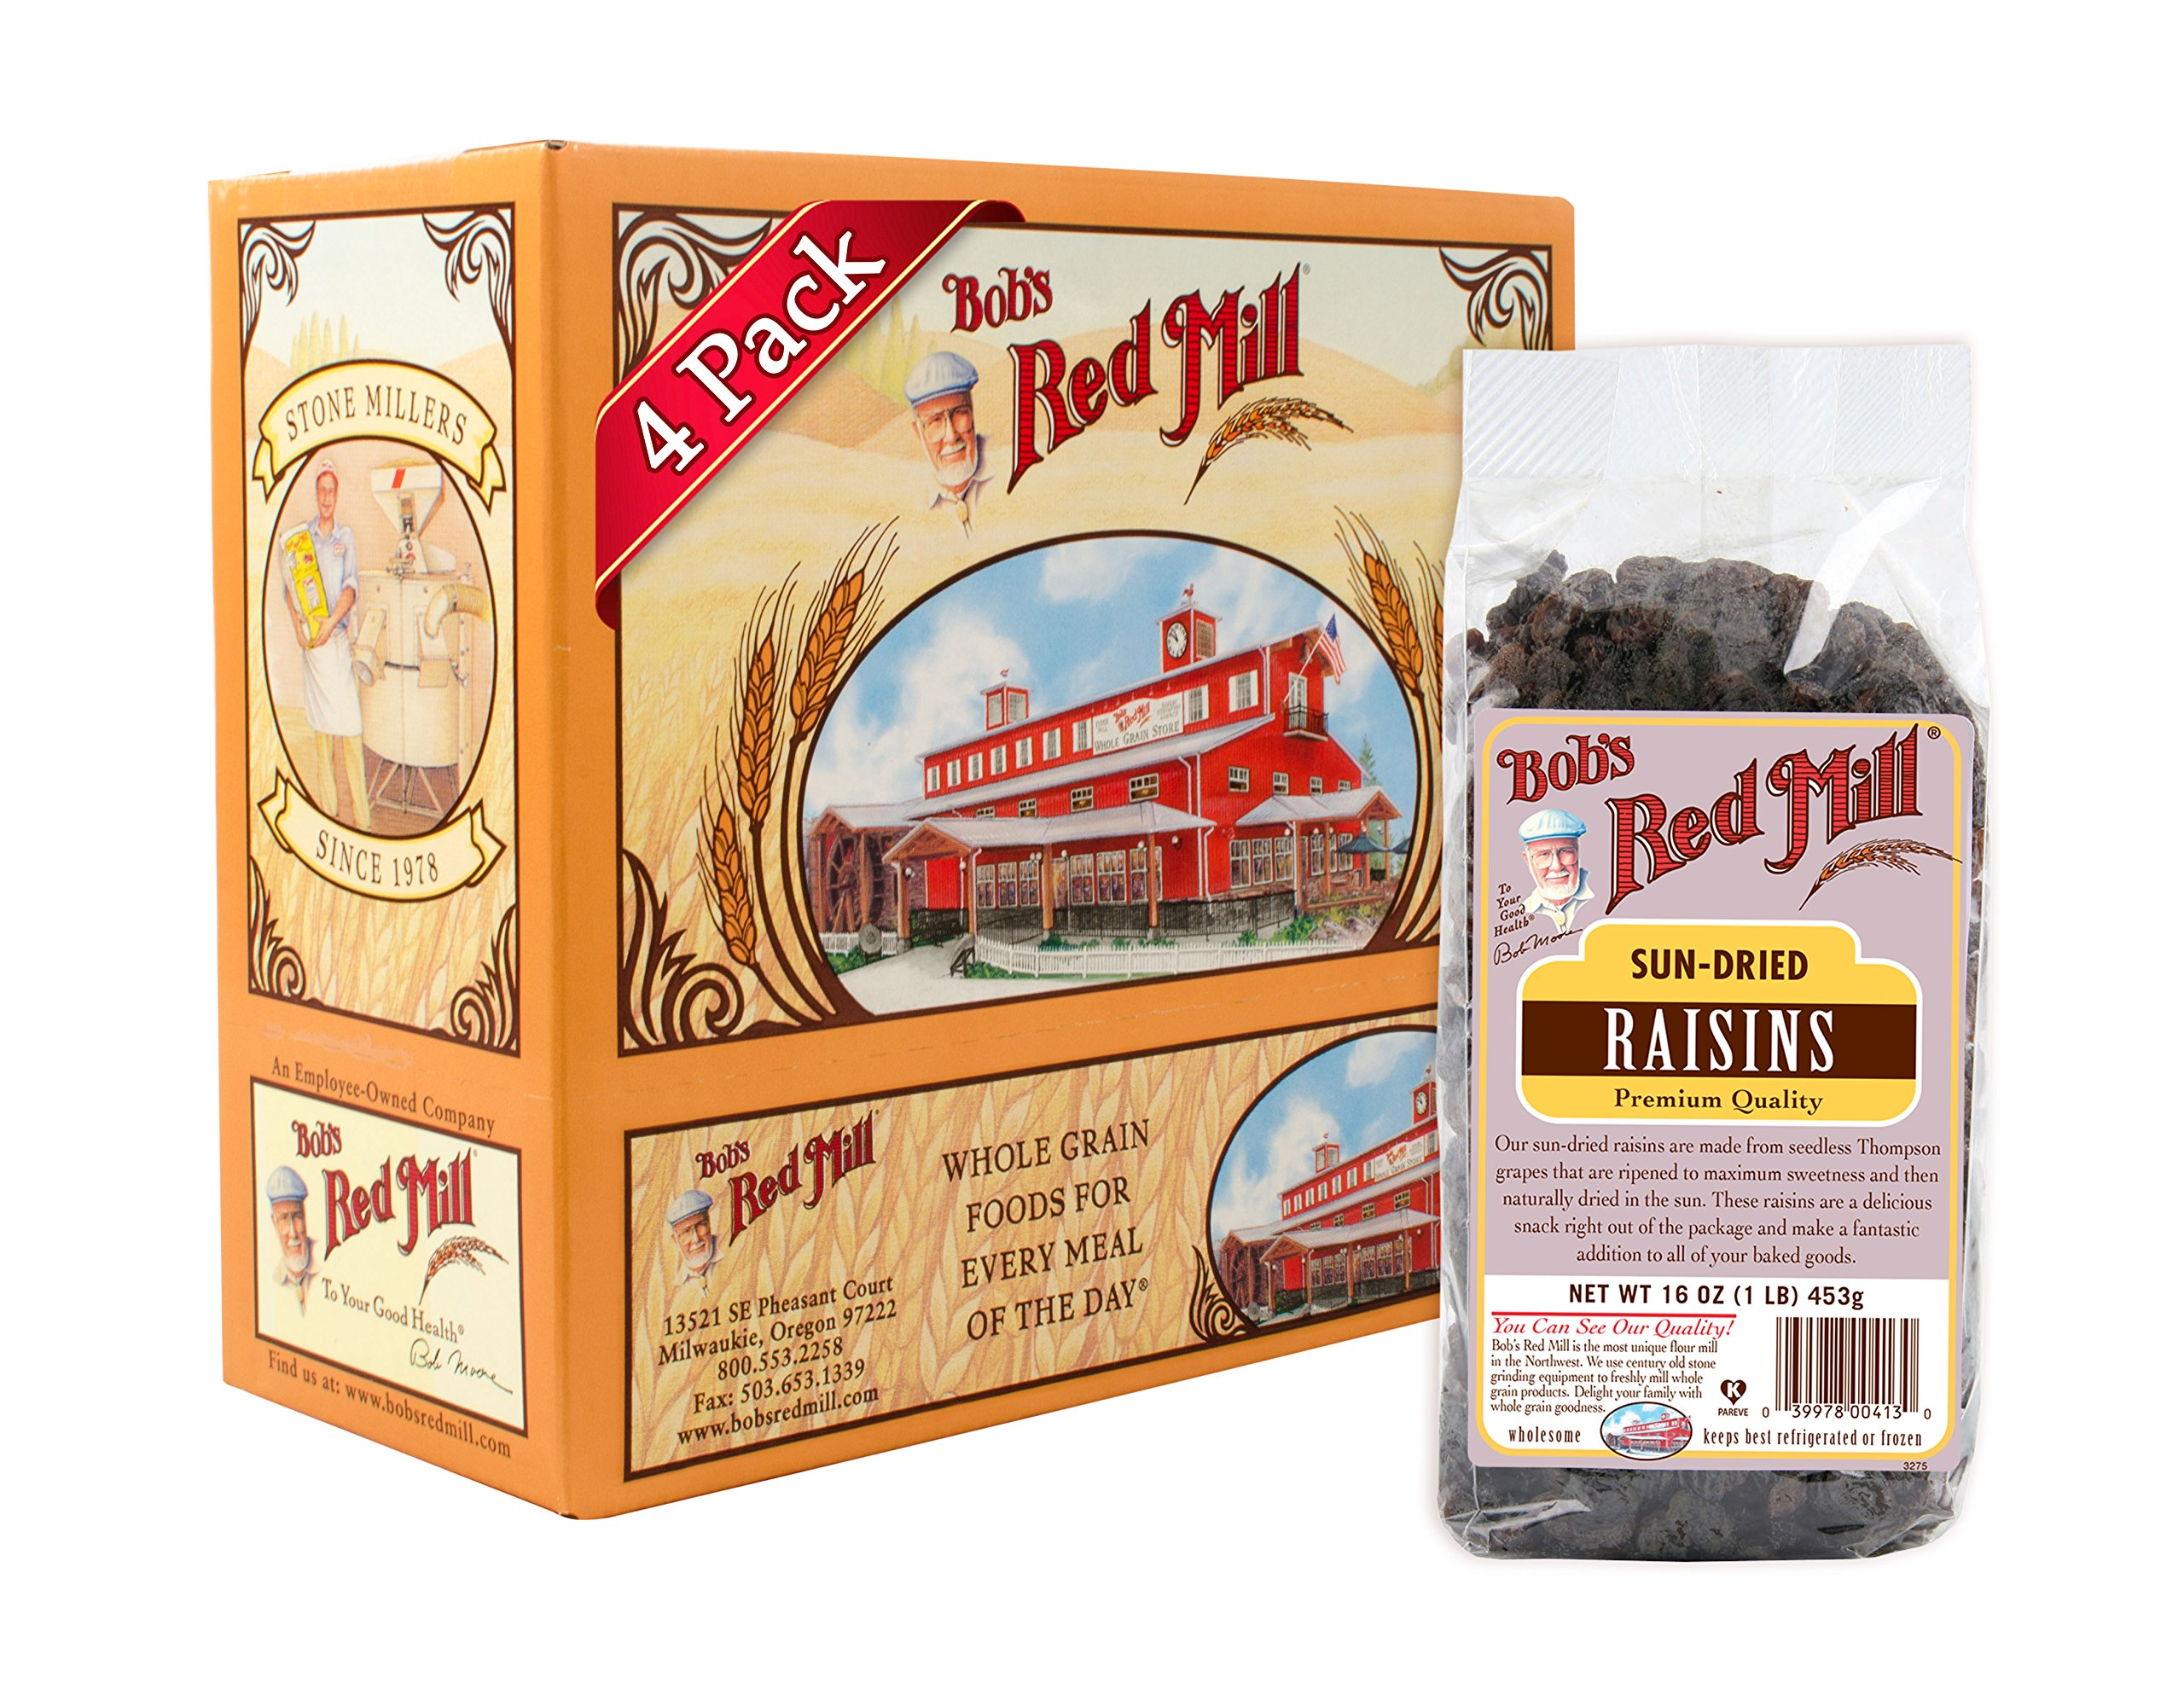 Bob's Red Mill Sun-Dried Raisins, 16-ounce (Pack of 4) by Bob's Red Mill